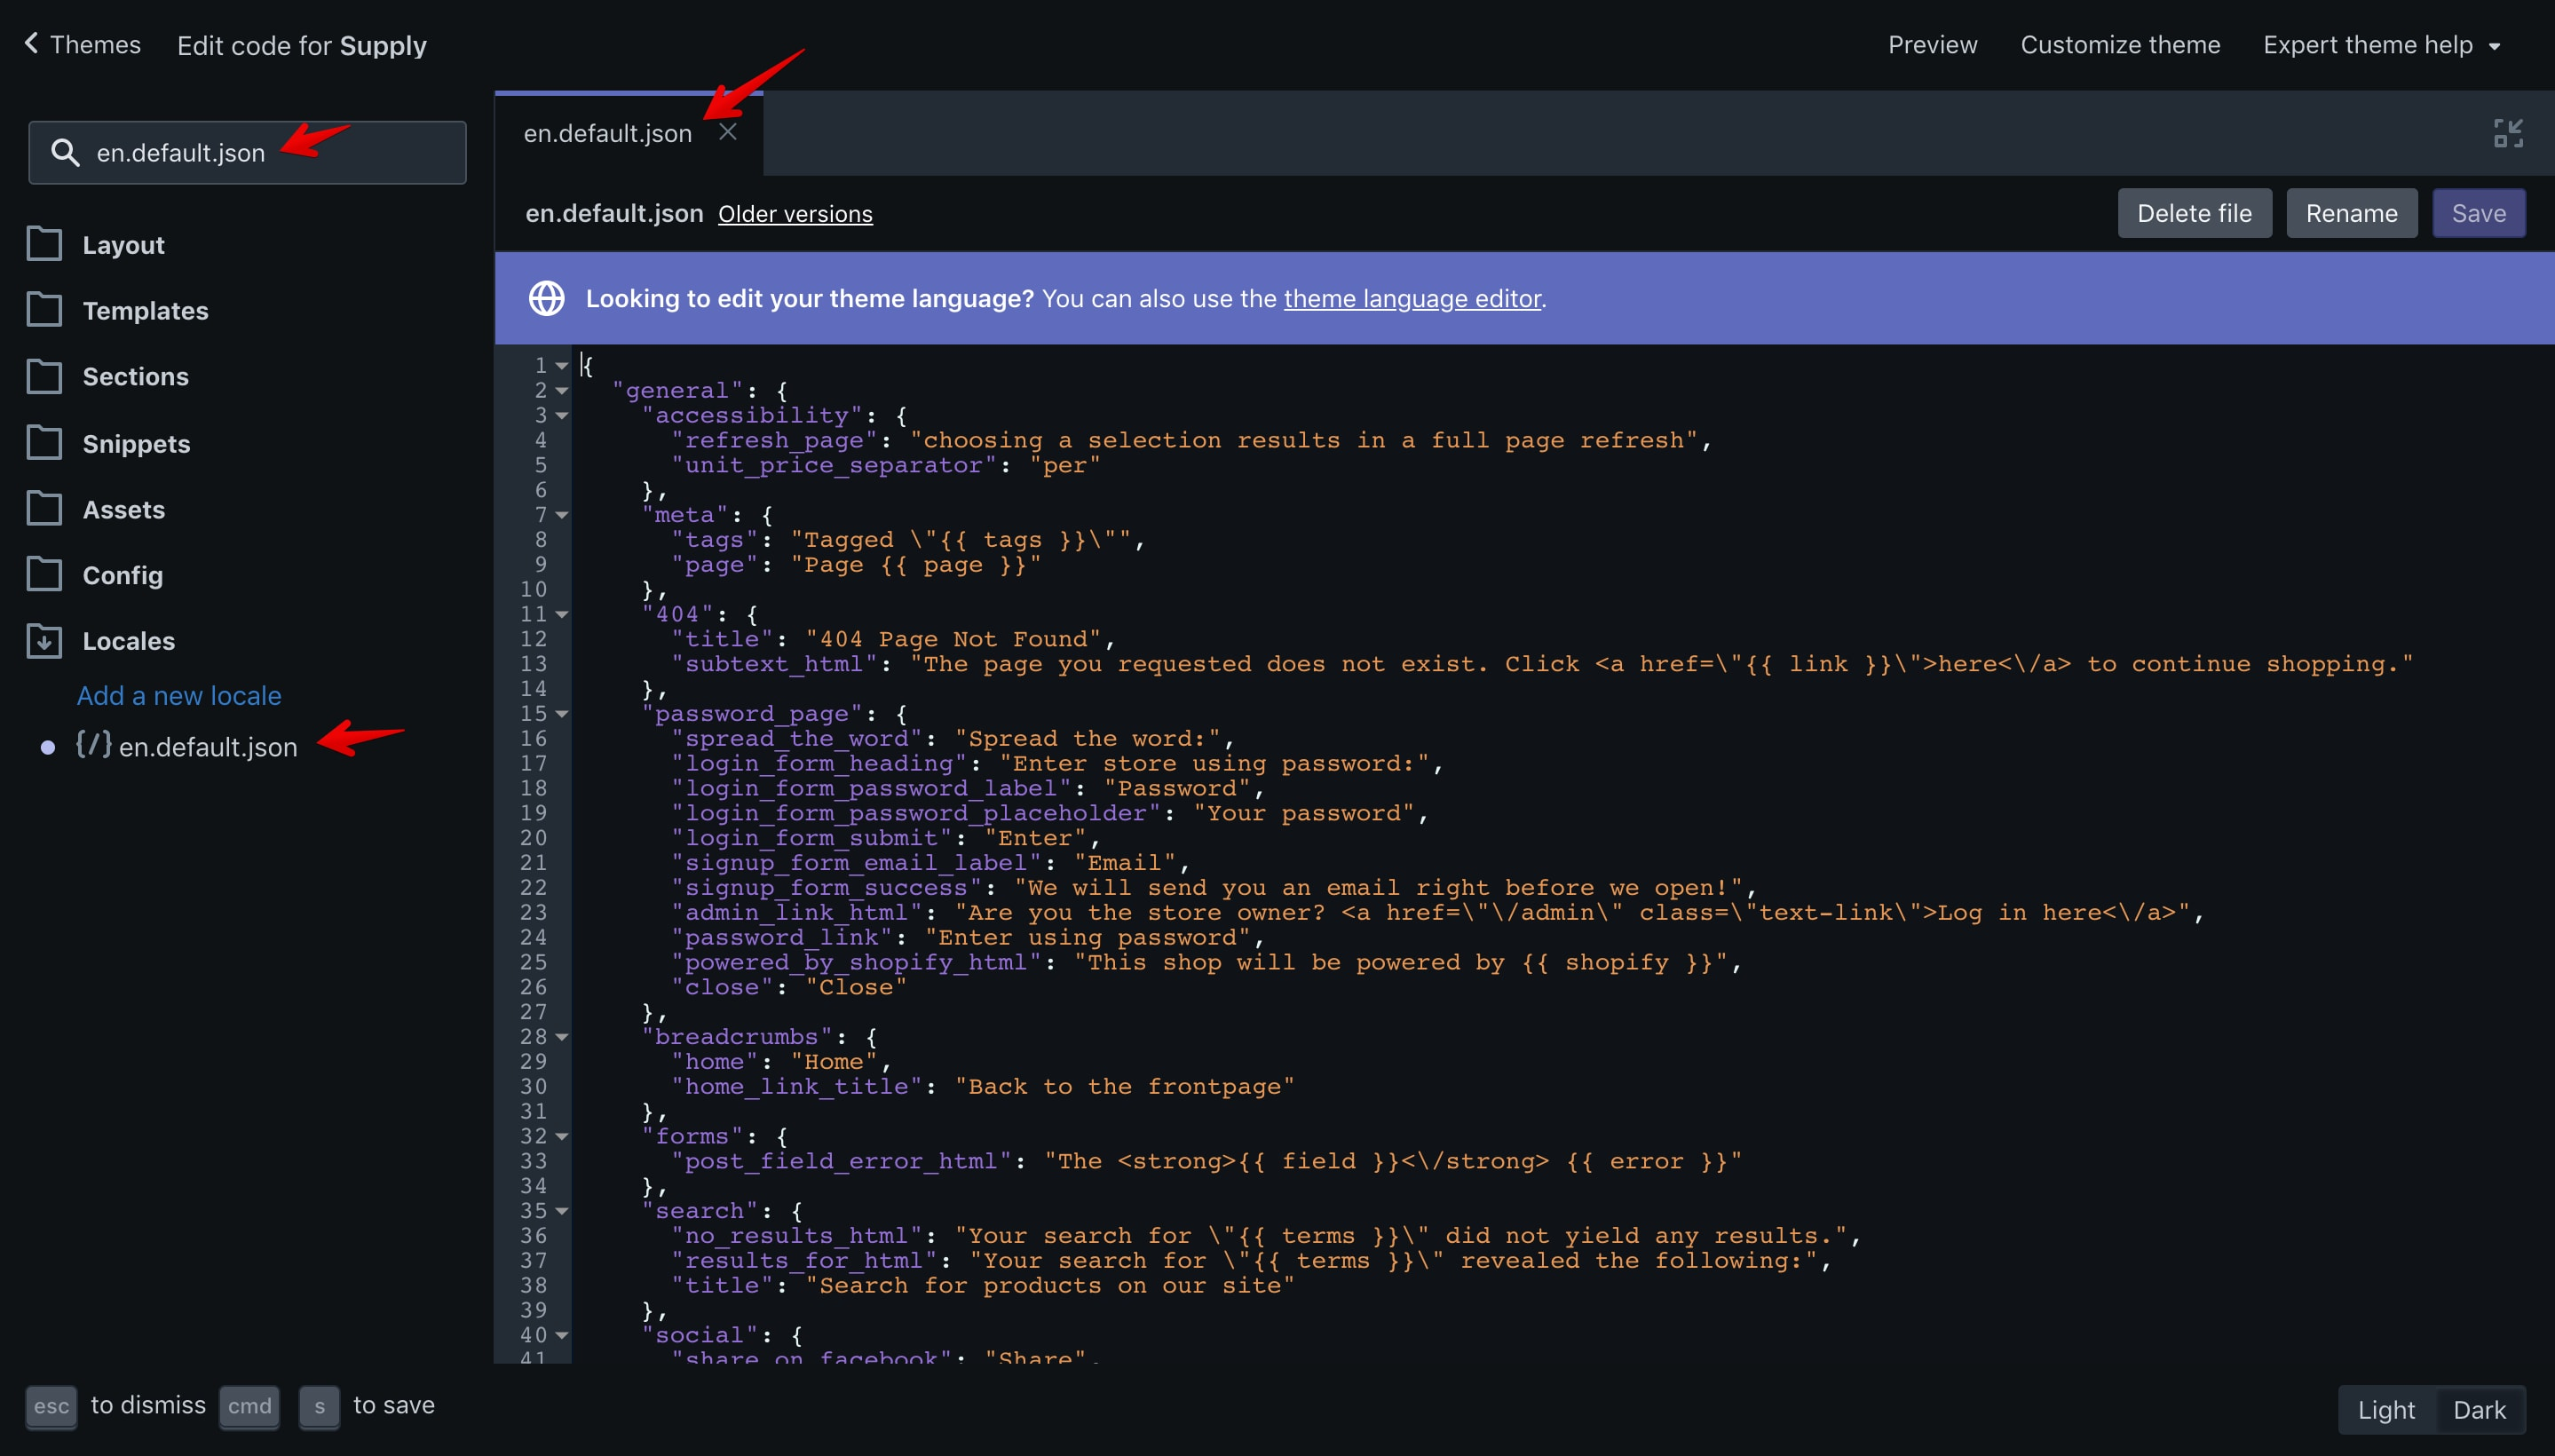 """Supply theme """"en.default.json"""" file opened in the code editor."""